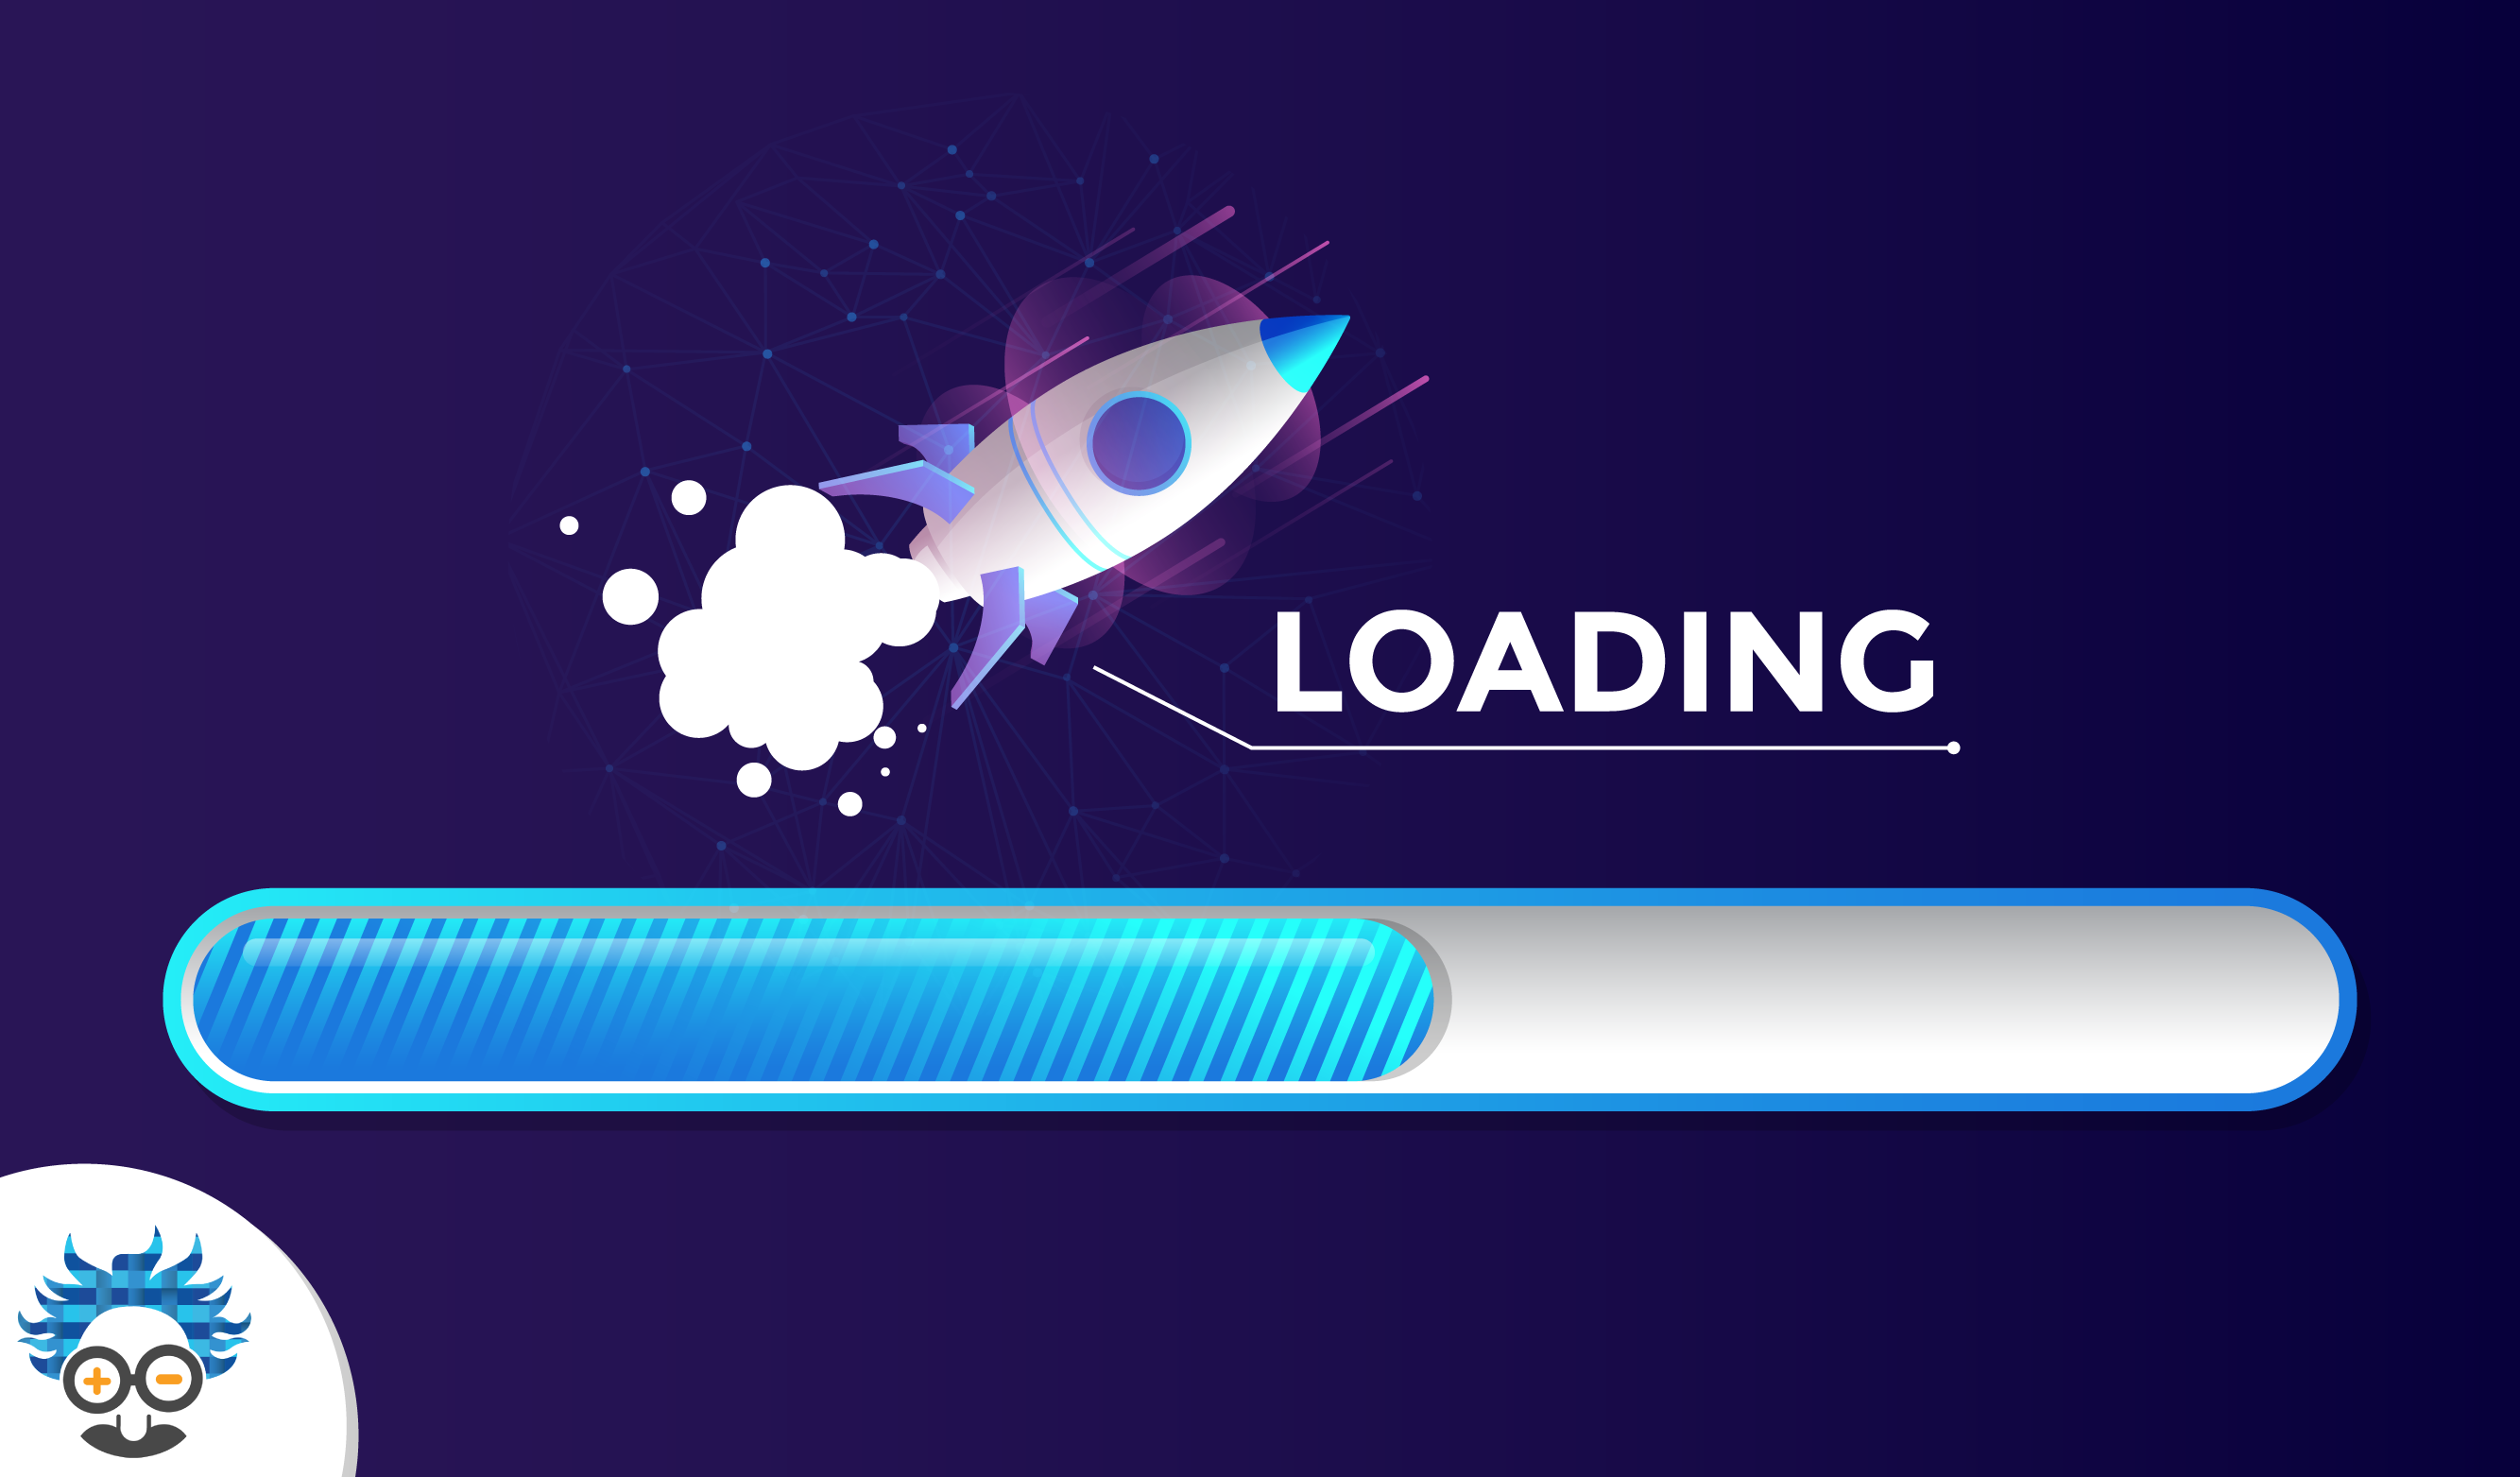 increase page load speed